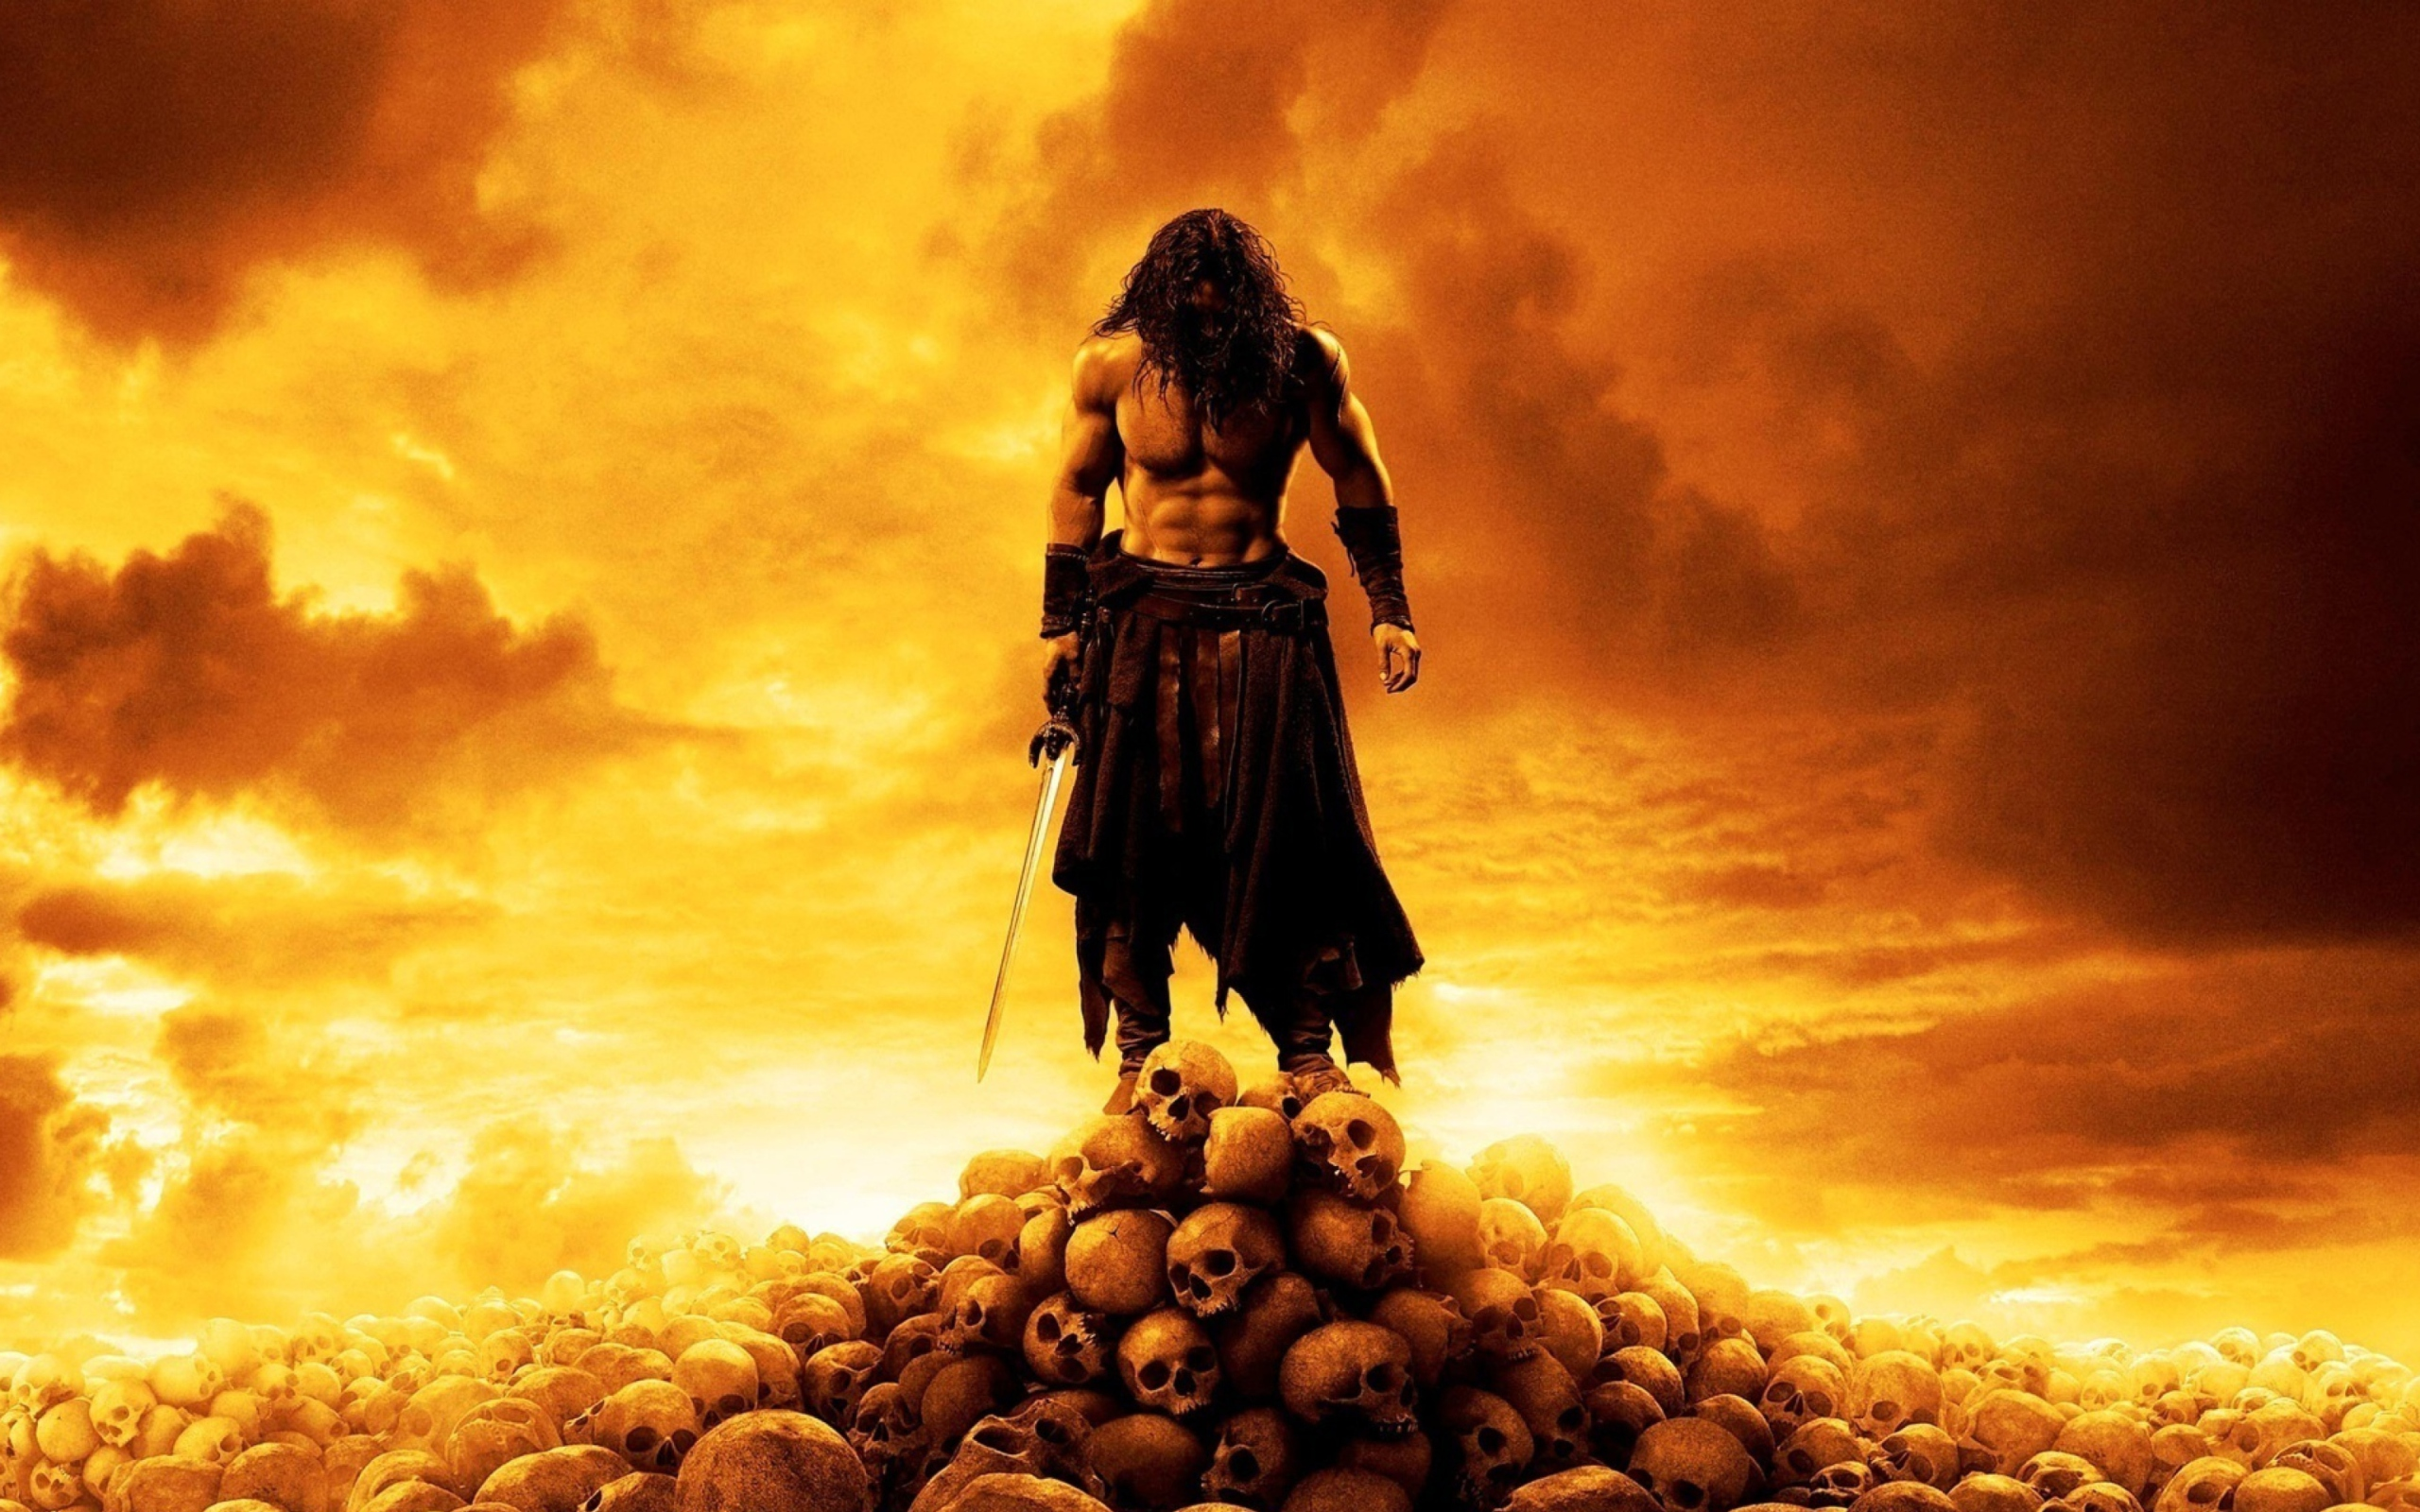 24 Best Fathers Day quot;s Meaningful Father's Day Conan the barbarian movie pictures